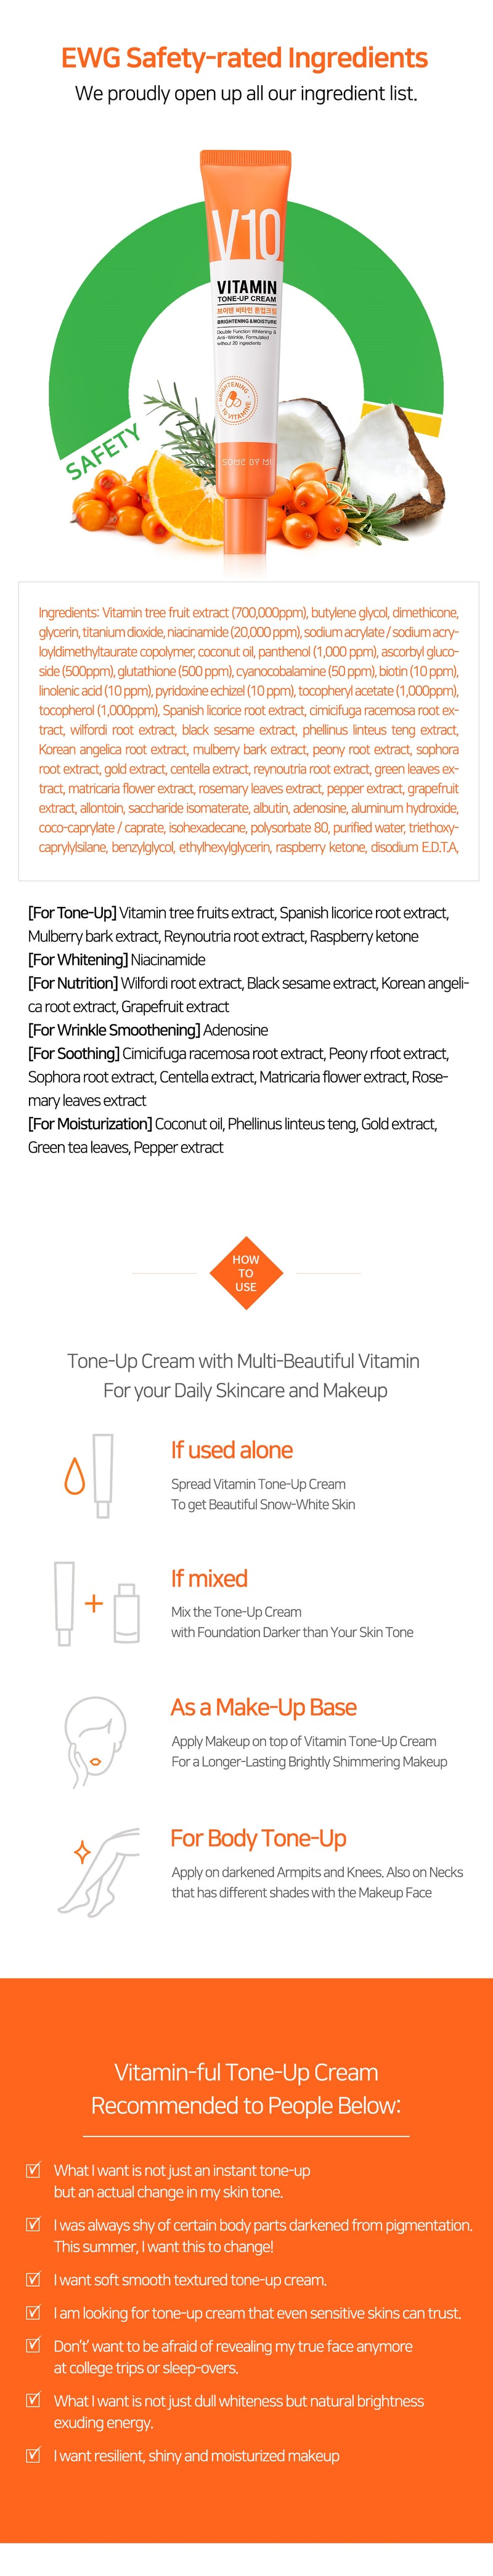 Some By Mi Vitamin V10 Tone-Up Cream